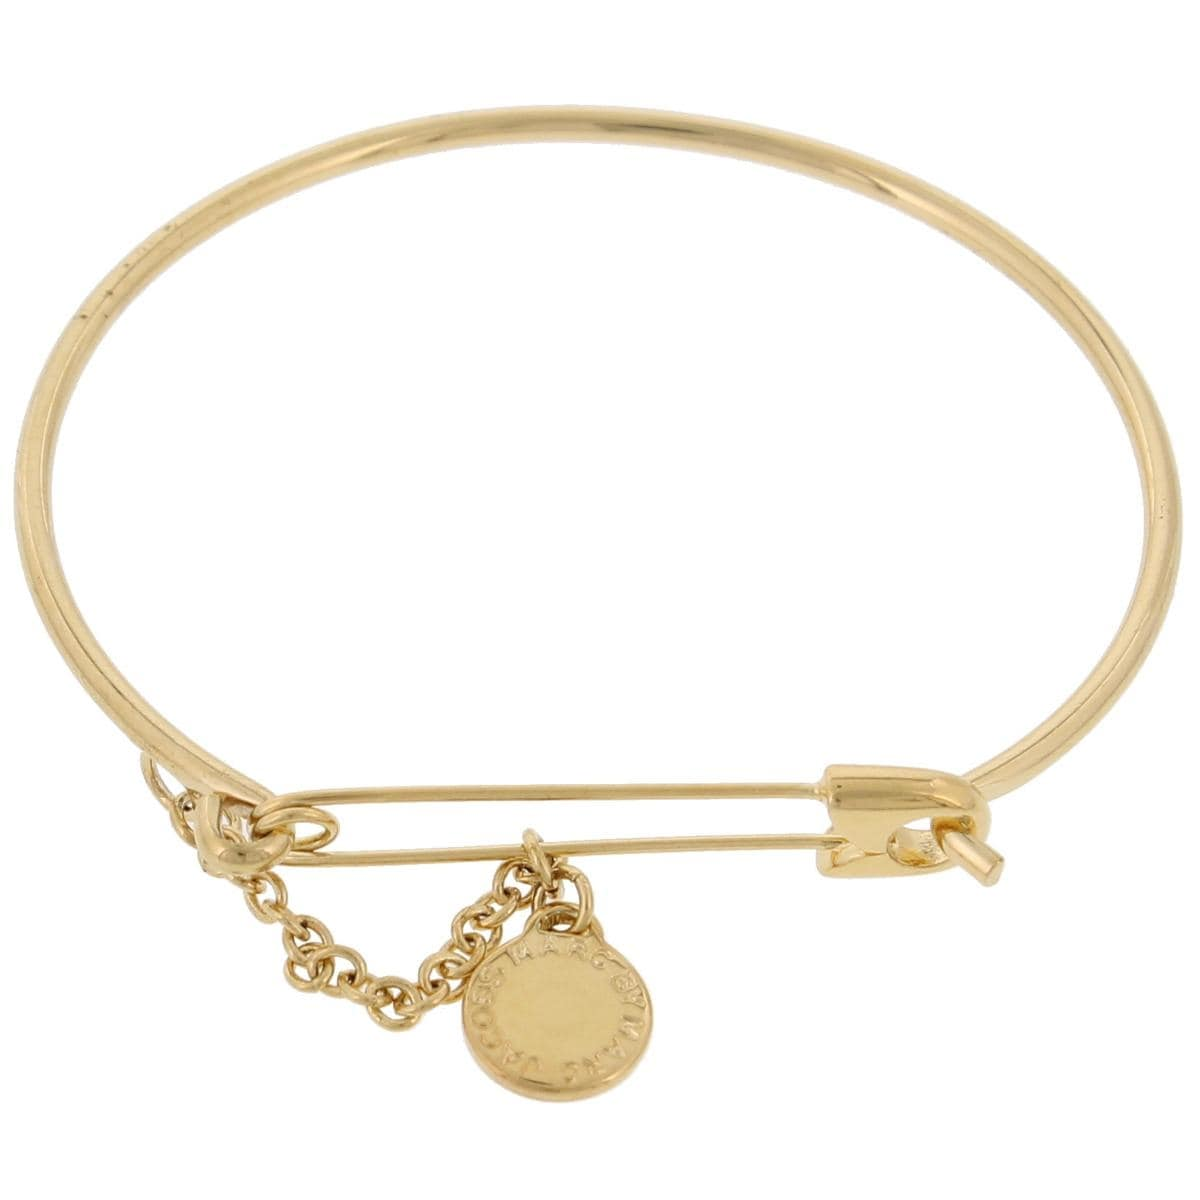 Bracelet for Women, Gold, Sterling Silver, 2017, One Size Marc Jacobs